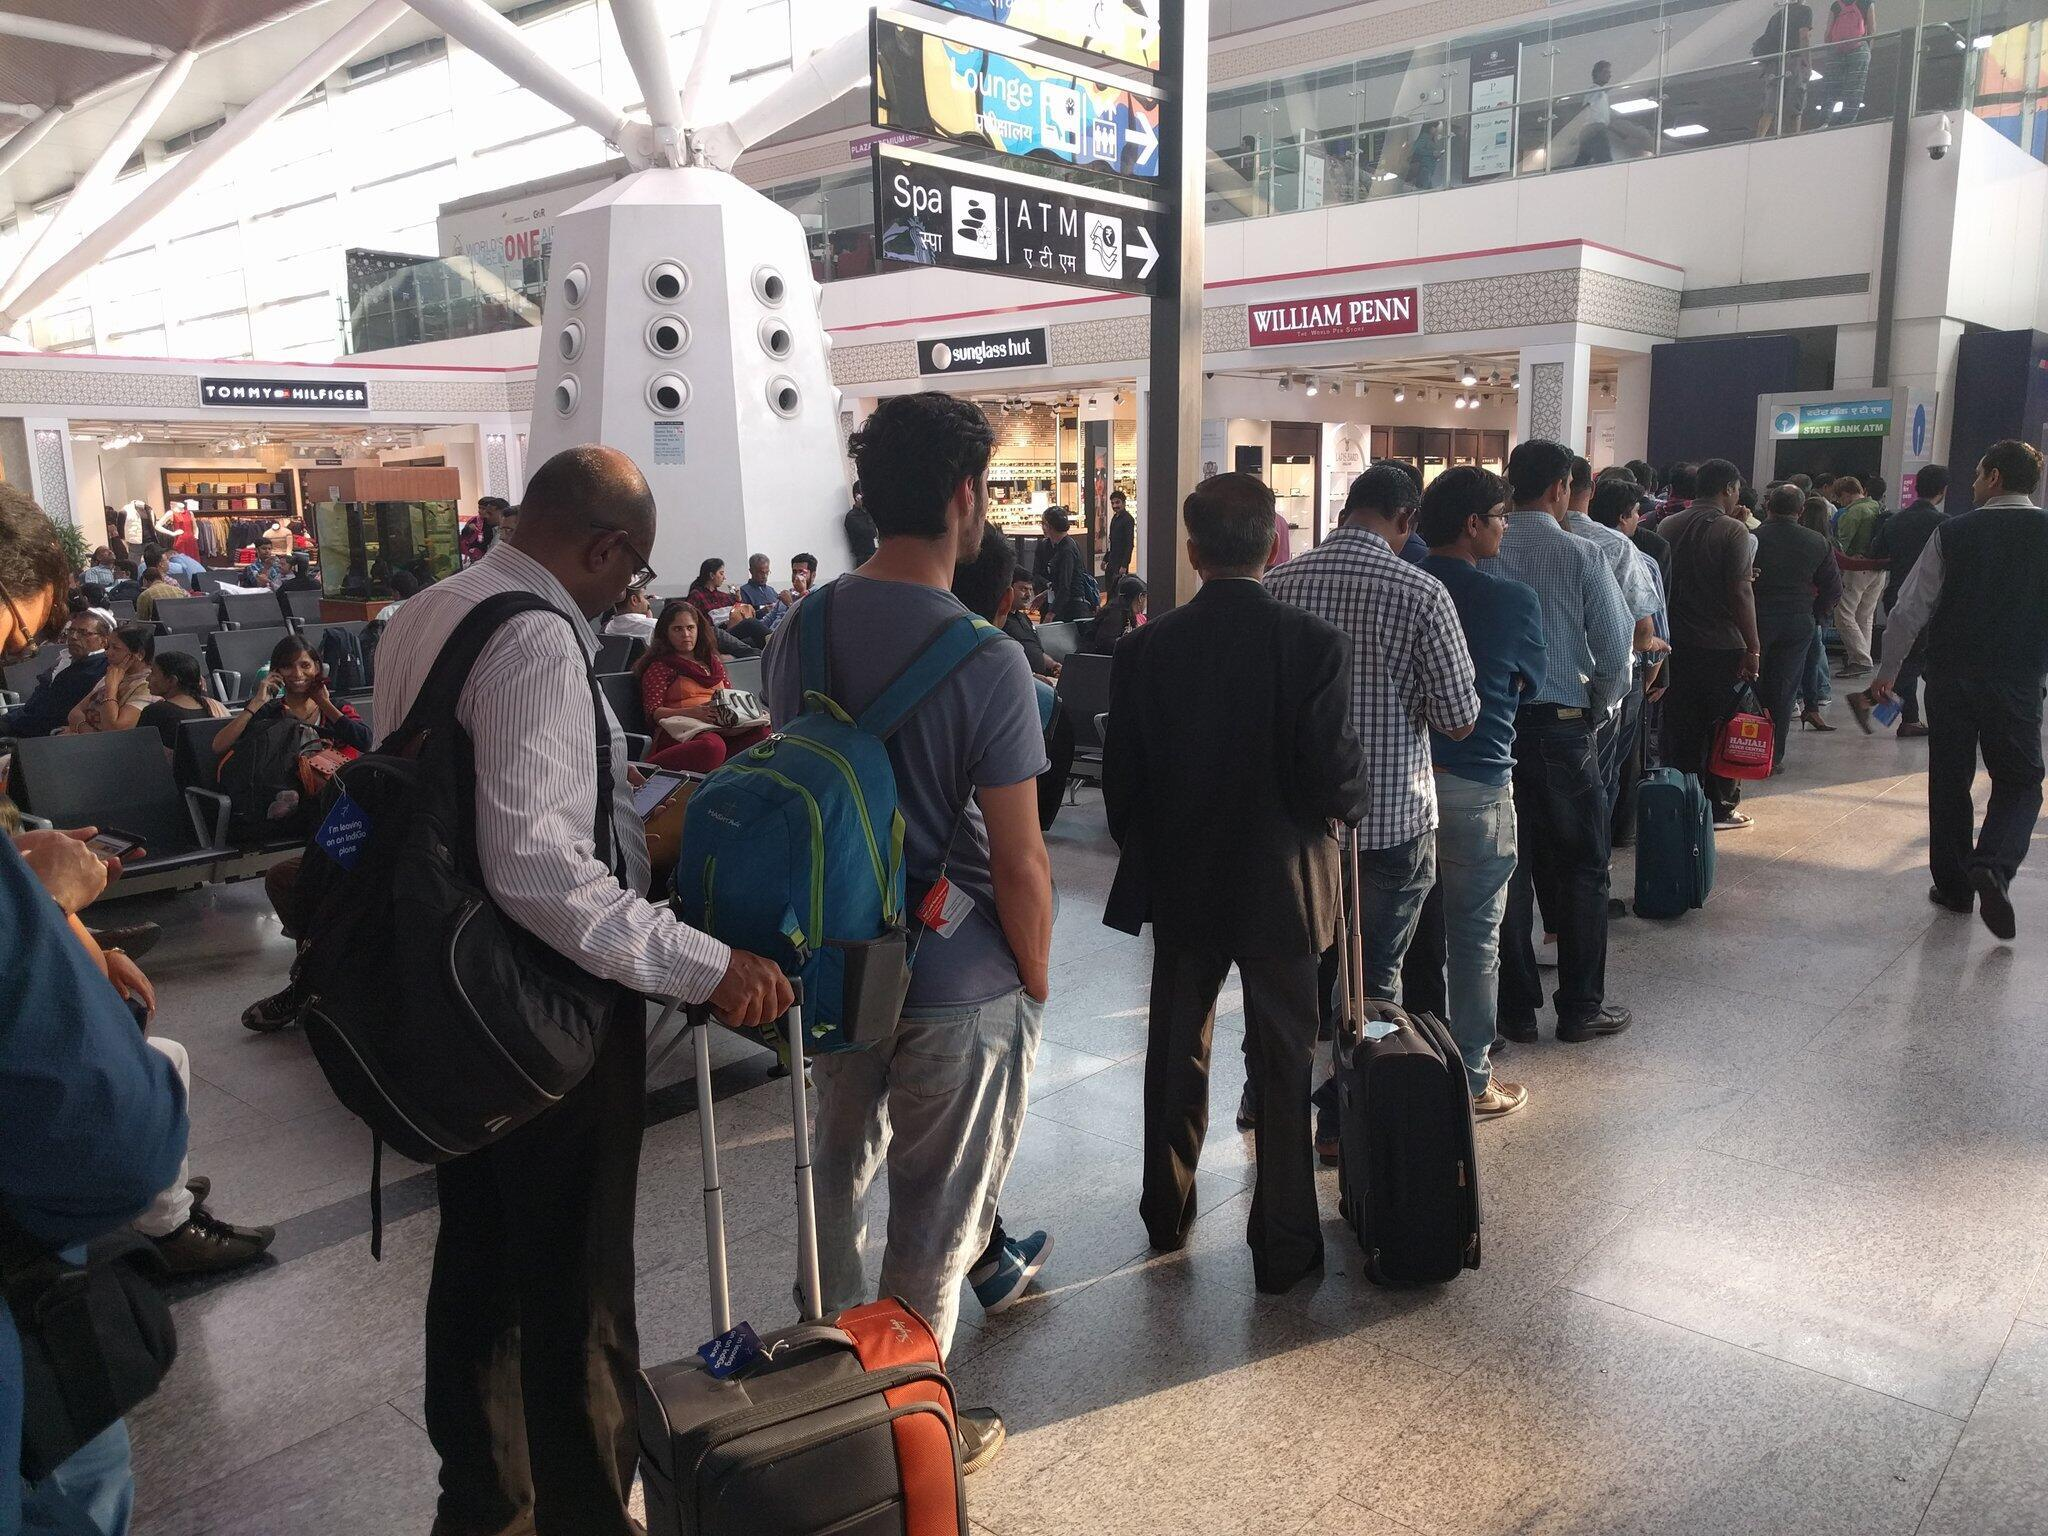 A long queue builds up at an ATM at an airport in Delhi.